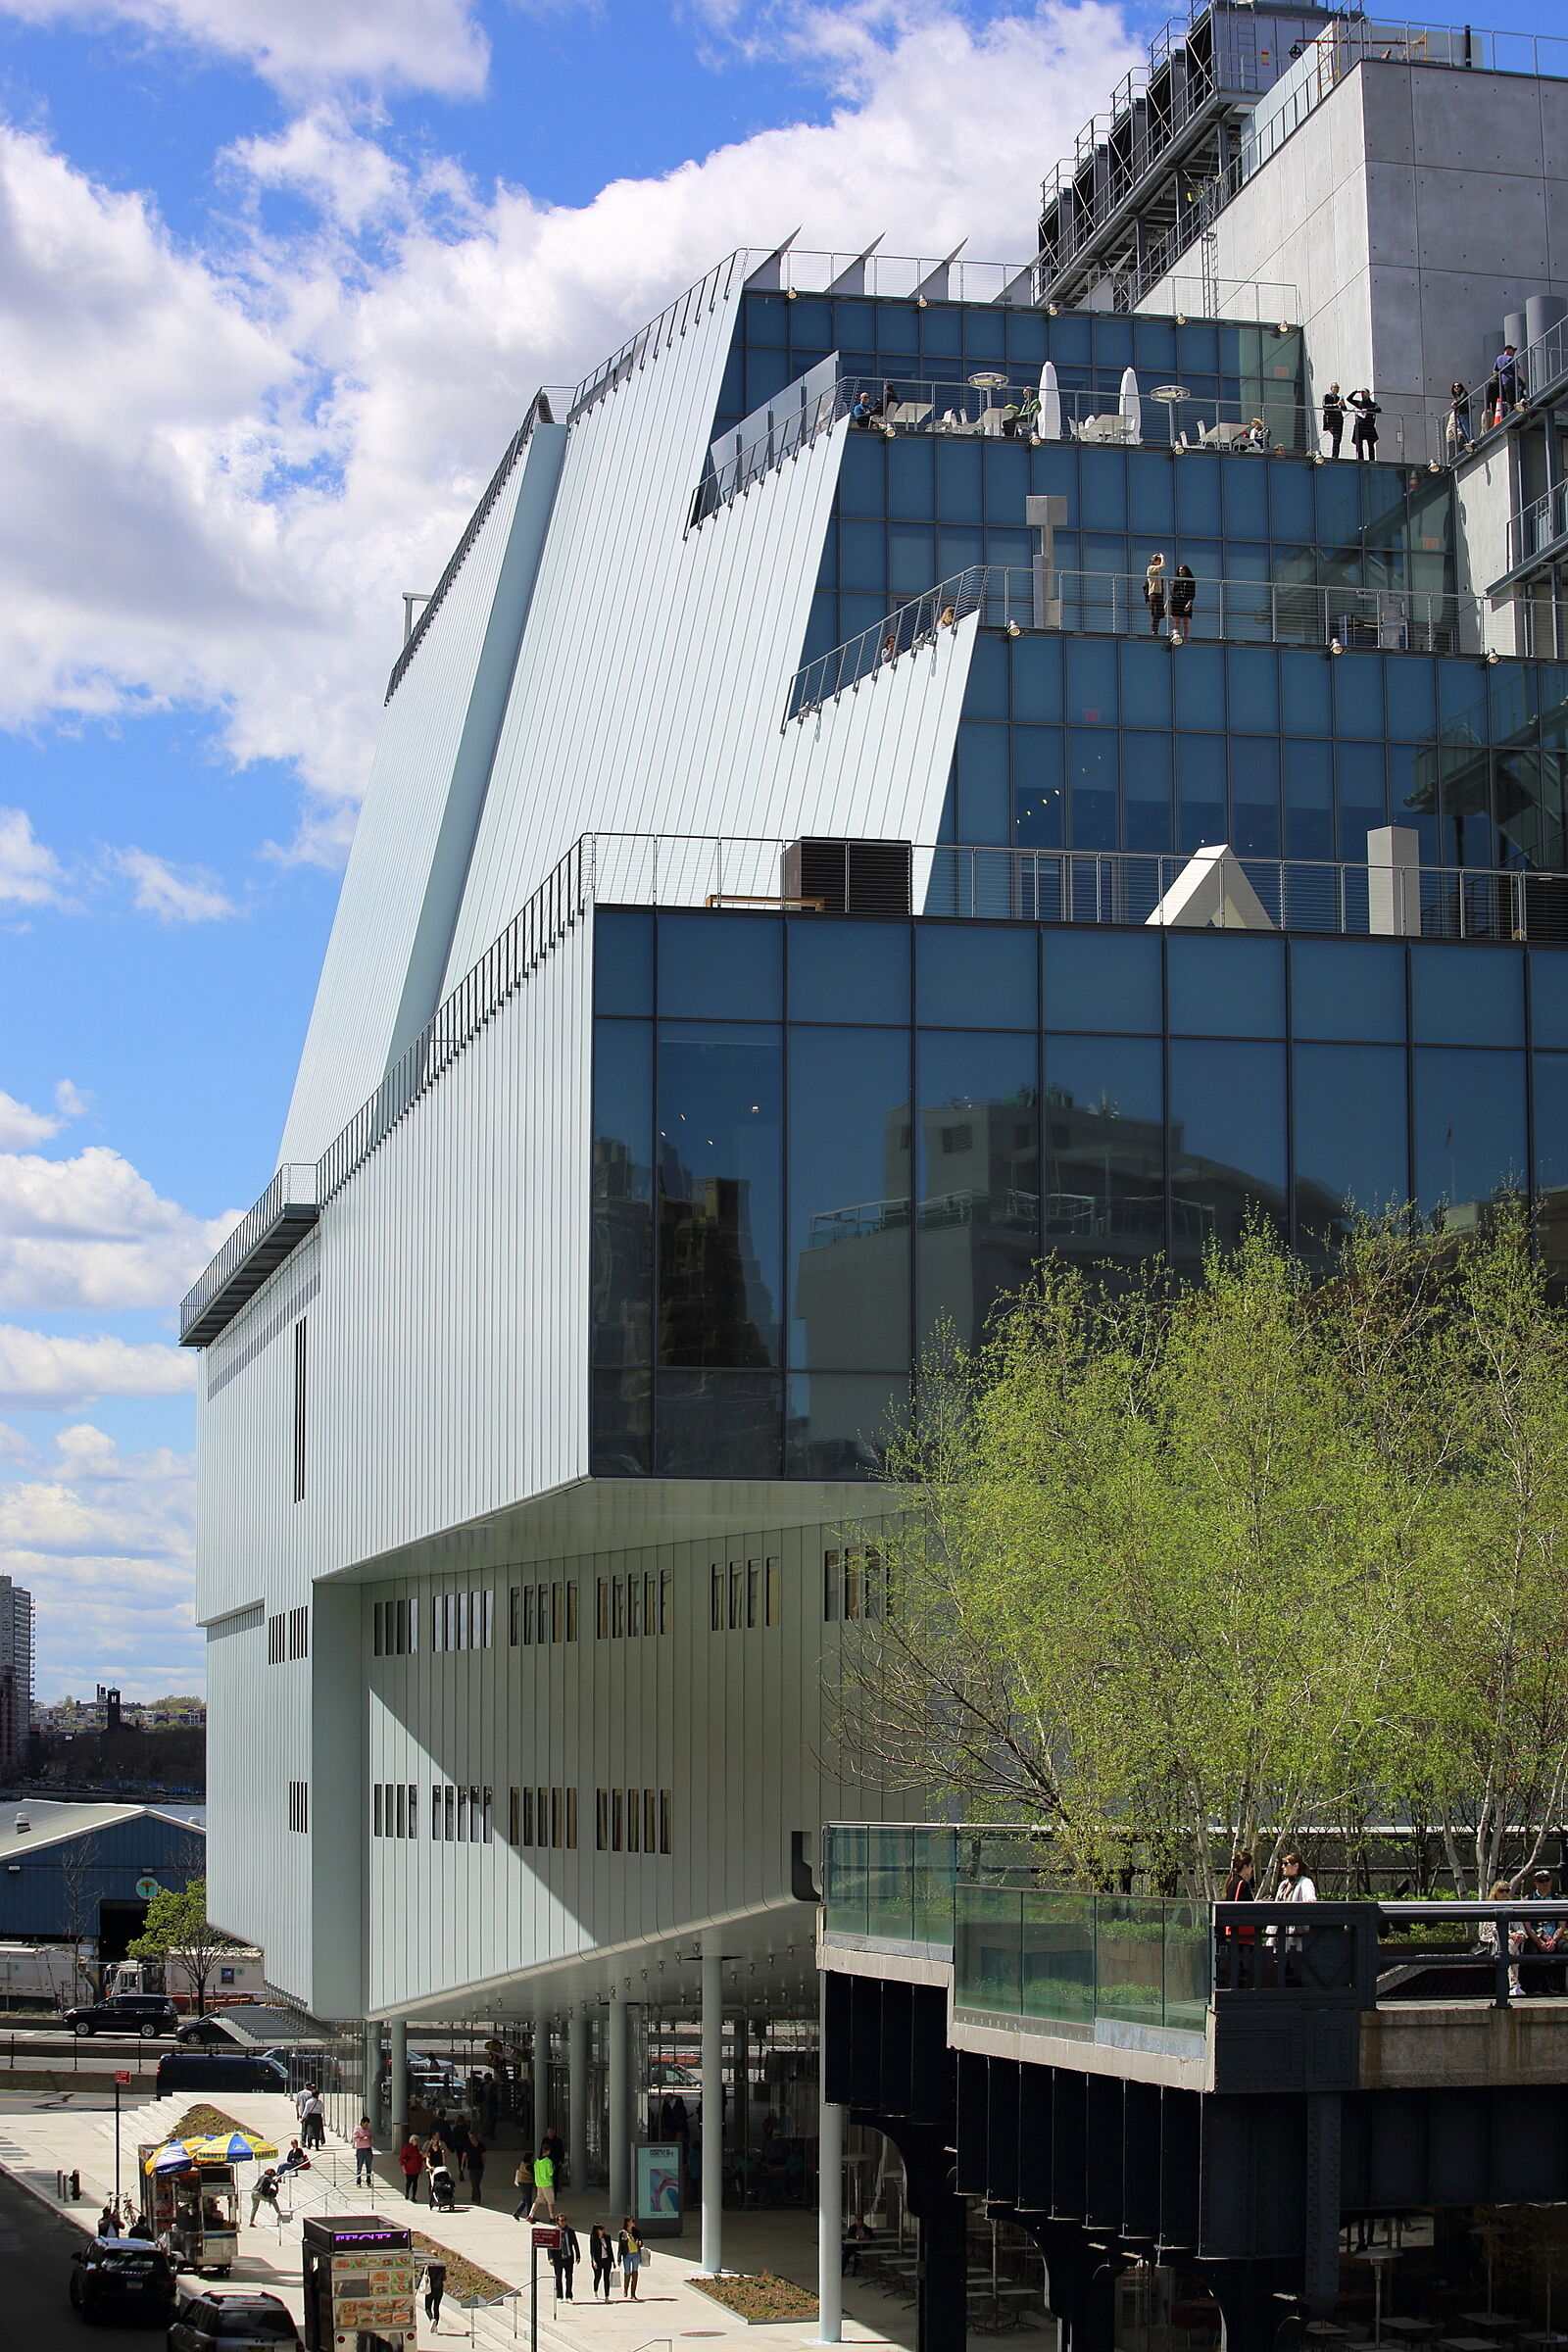 The outside of the Whitney Museum